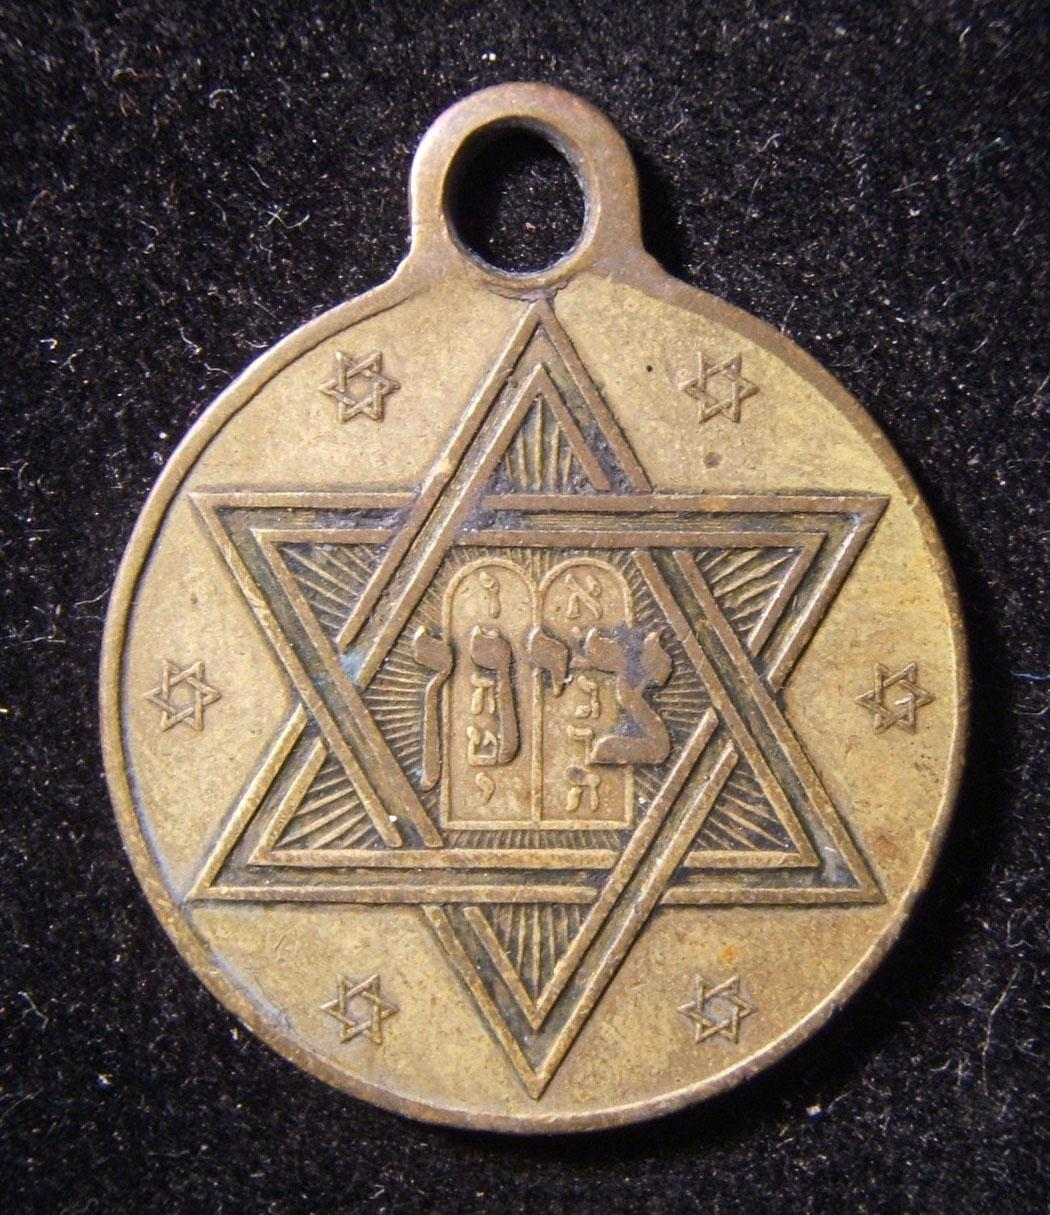 US: Jewish prayer/good luck tallion with the Cohen's blessing on obv. & rev. Star of David with the Tablets in center with word